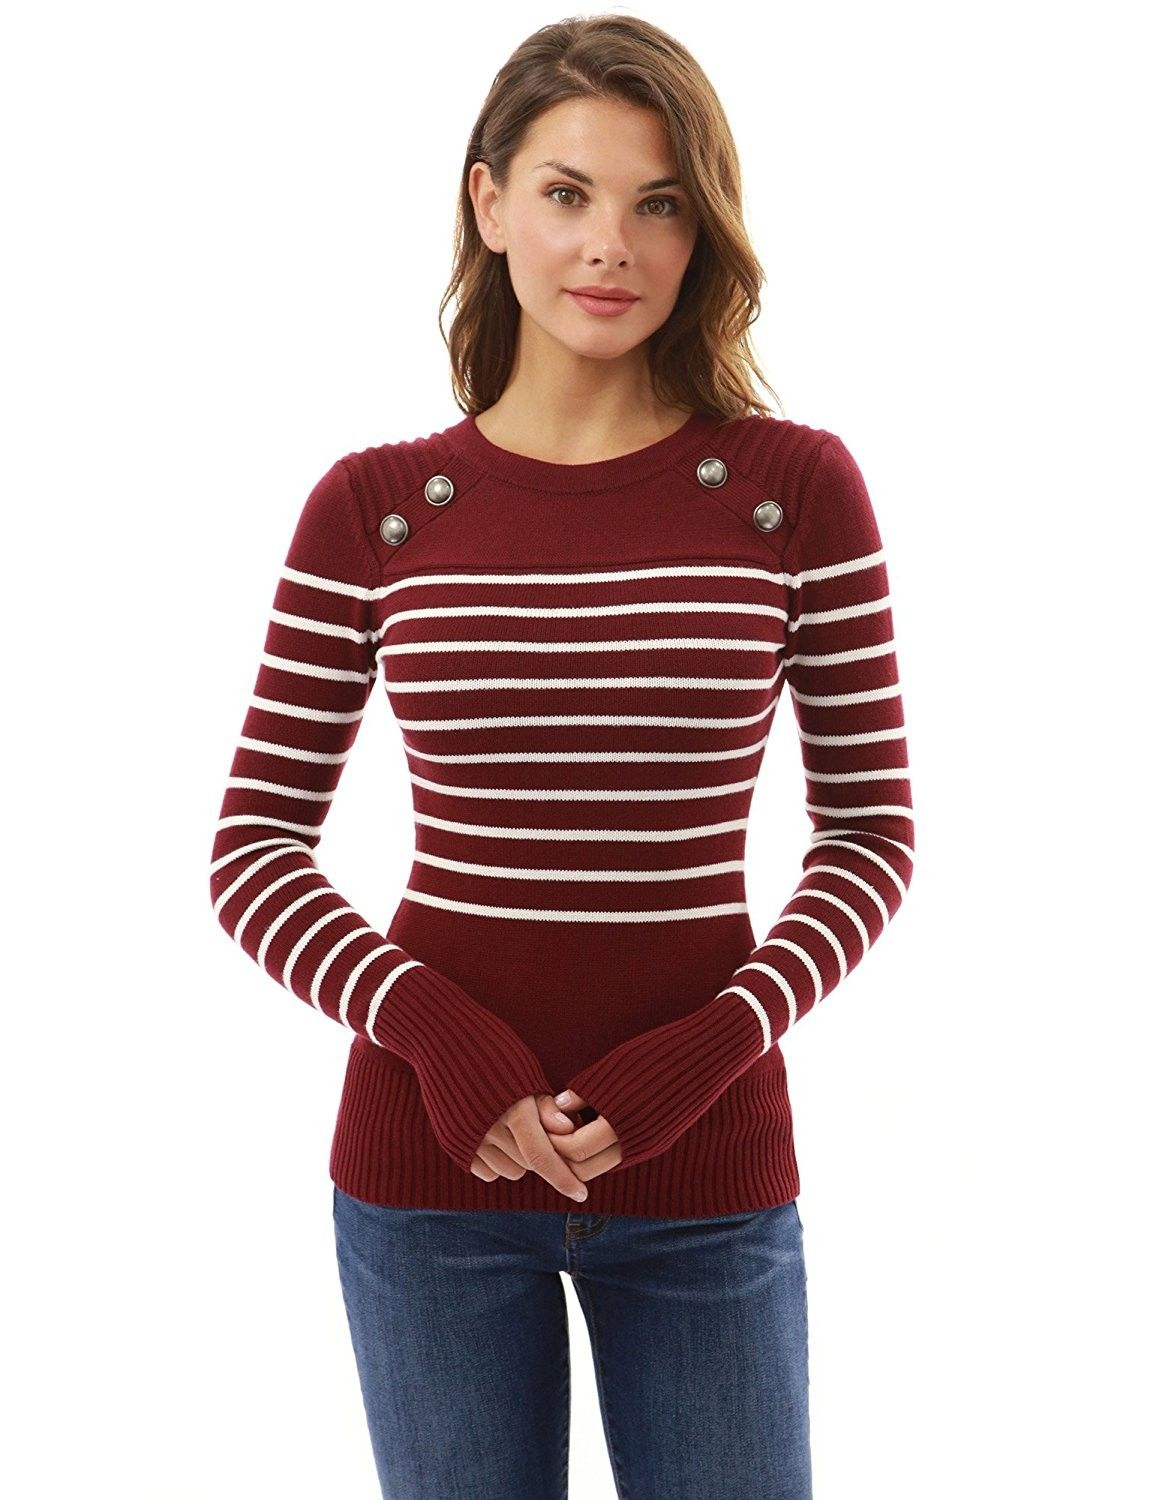 56ed8bdcc5 PattyBoutik Women Crewneck Trim Ribbed Sweater #Pullovers, #Sweaters,  #Clothing, #Women, #Clothing, Shoes & Jewelry, | Like Product | Winter  sweater outfits ...